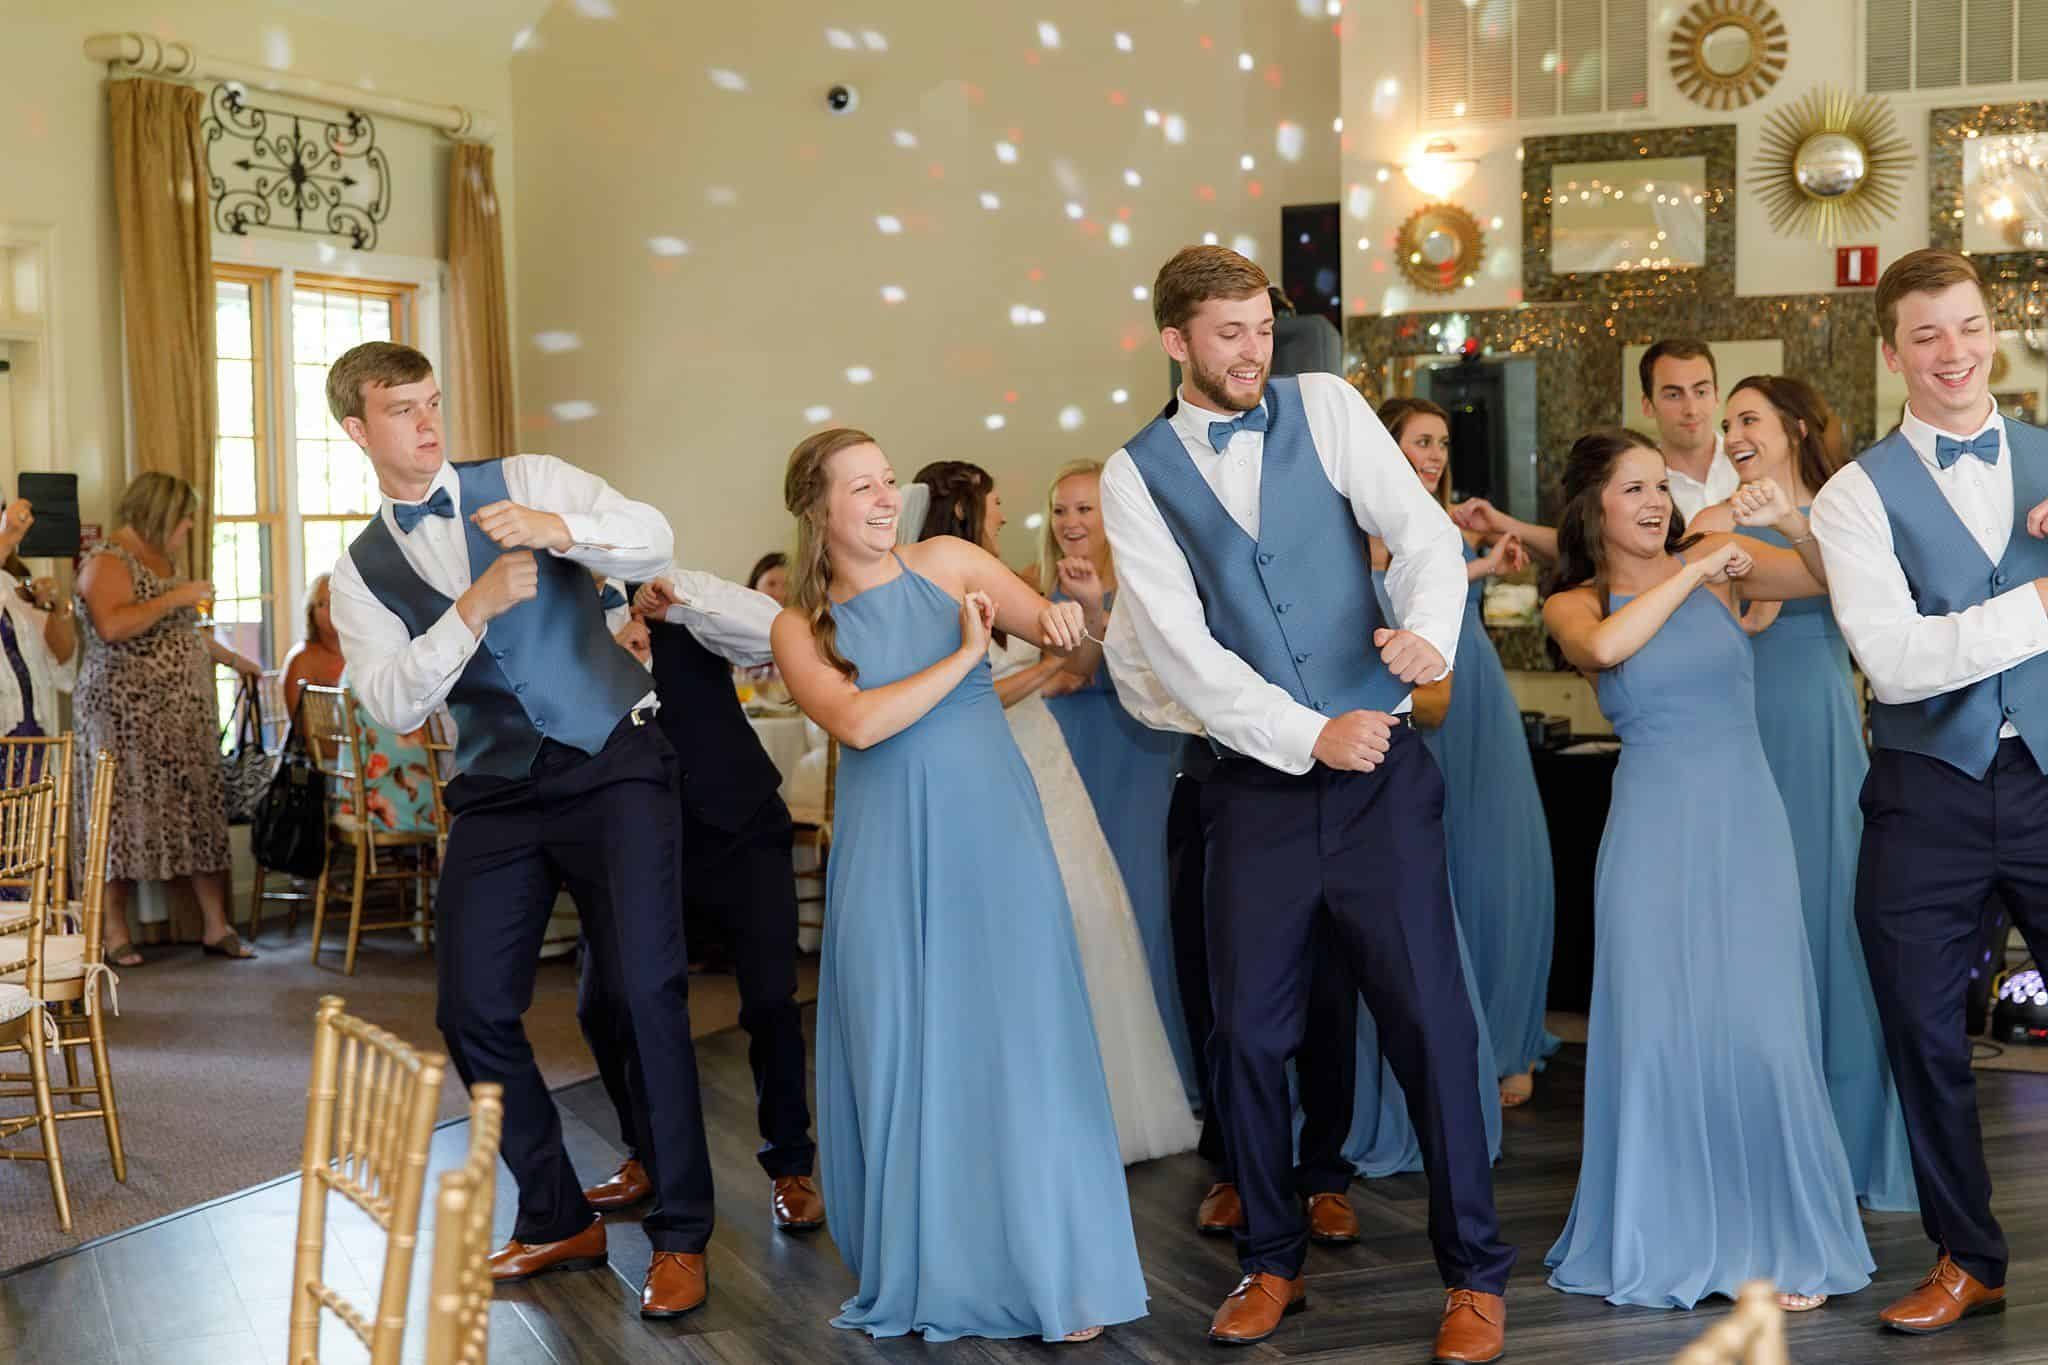 Bridesmaids and groomsmen dancing on dance floor at a wedding reception